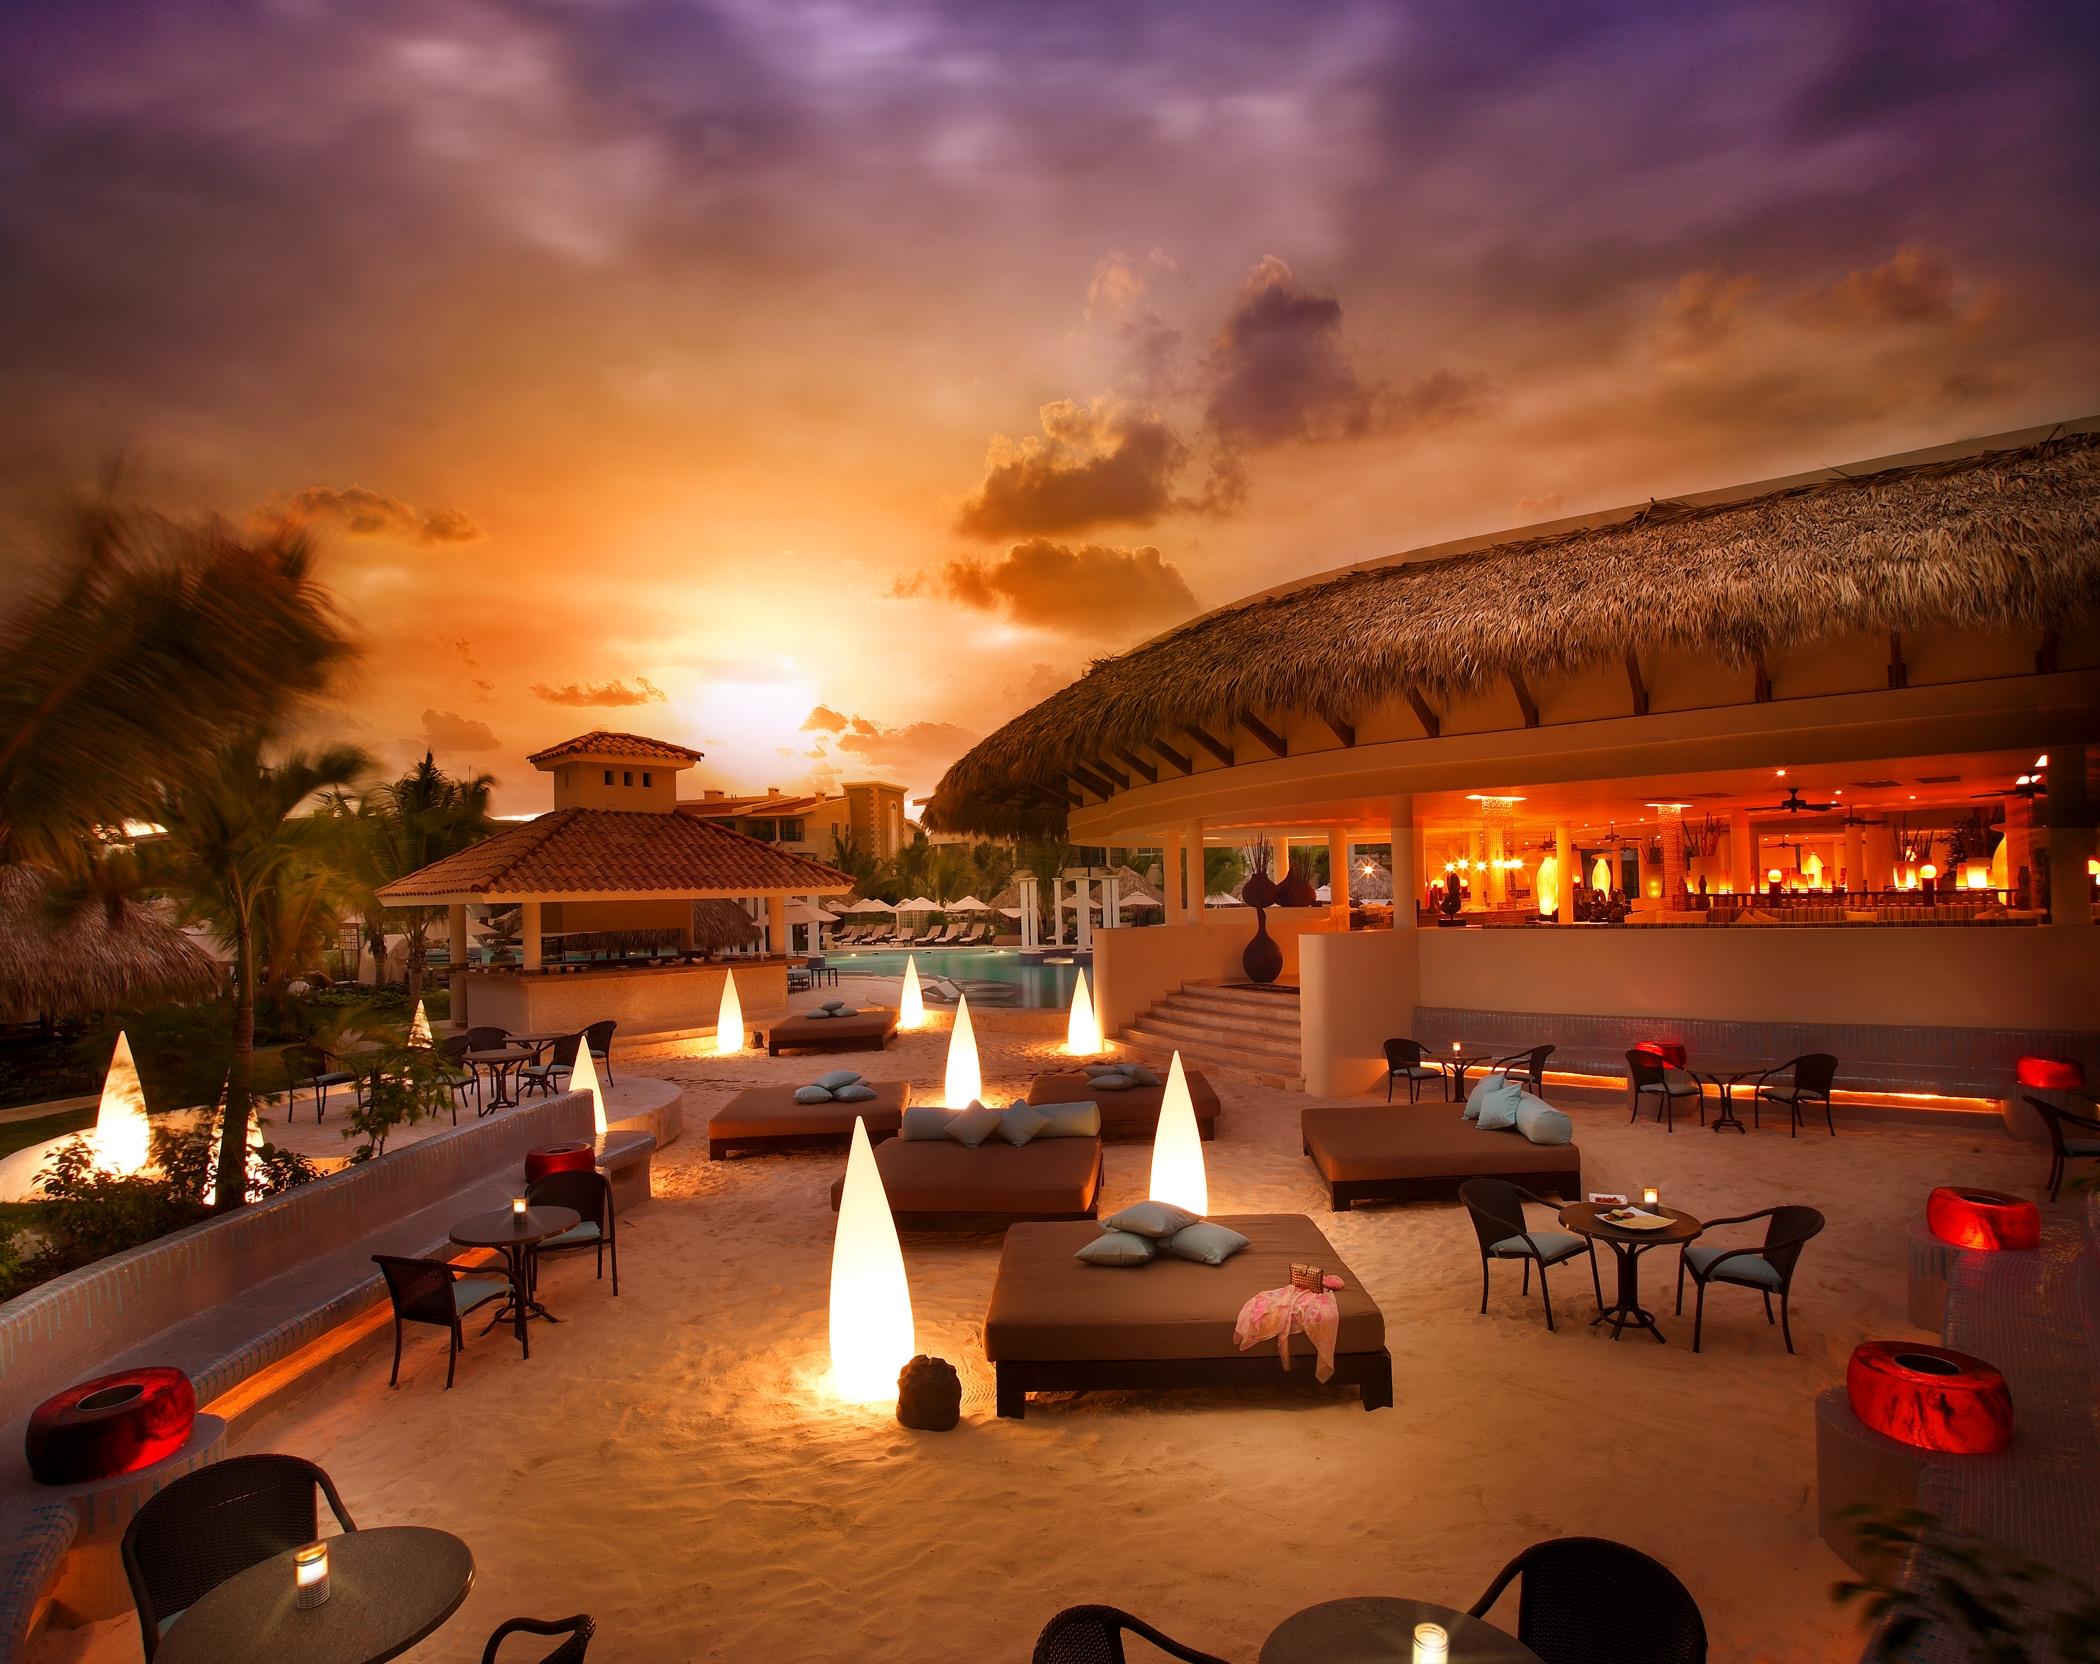 Meliá And Paradisus Resorts Have It All In The DR - Paradisus resorts